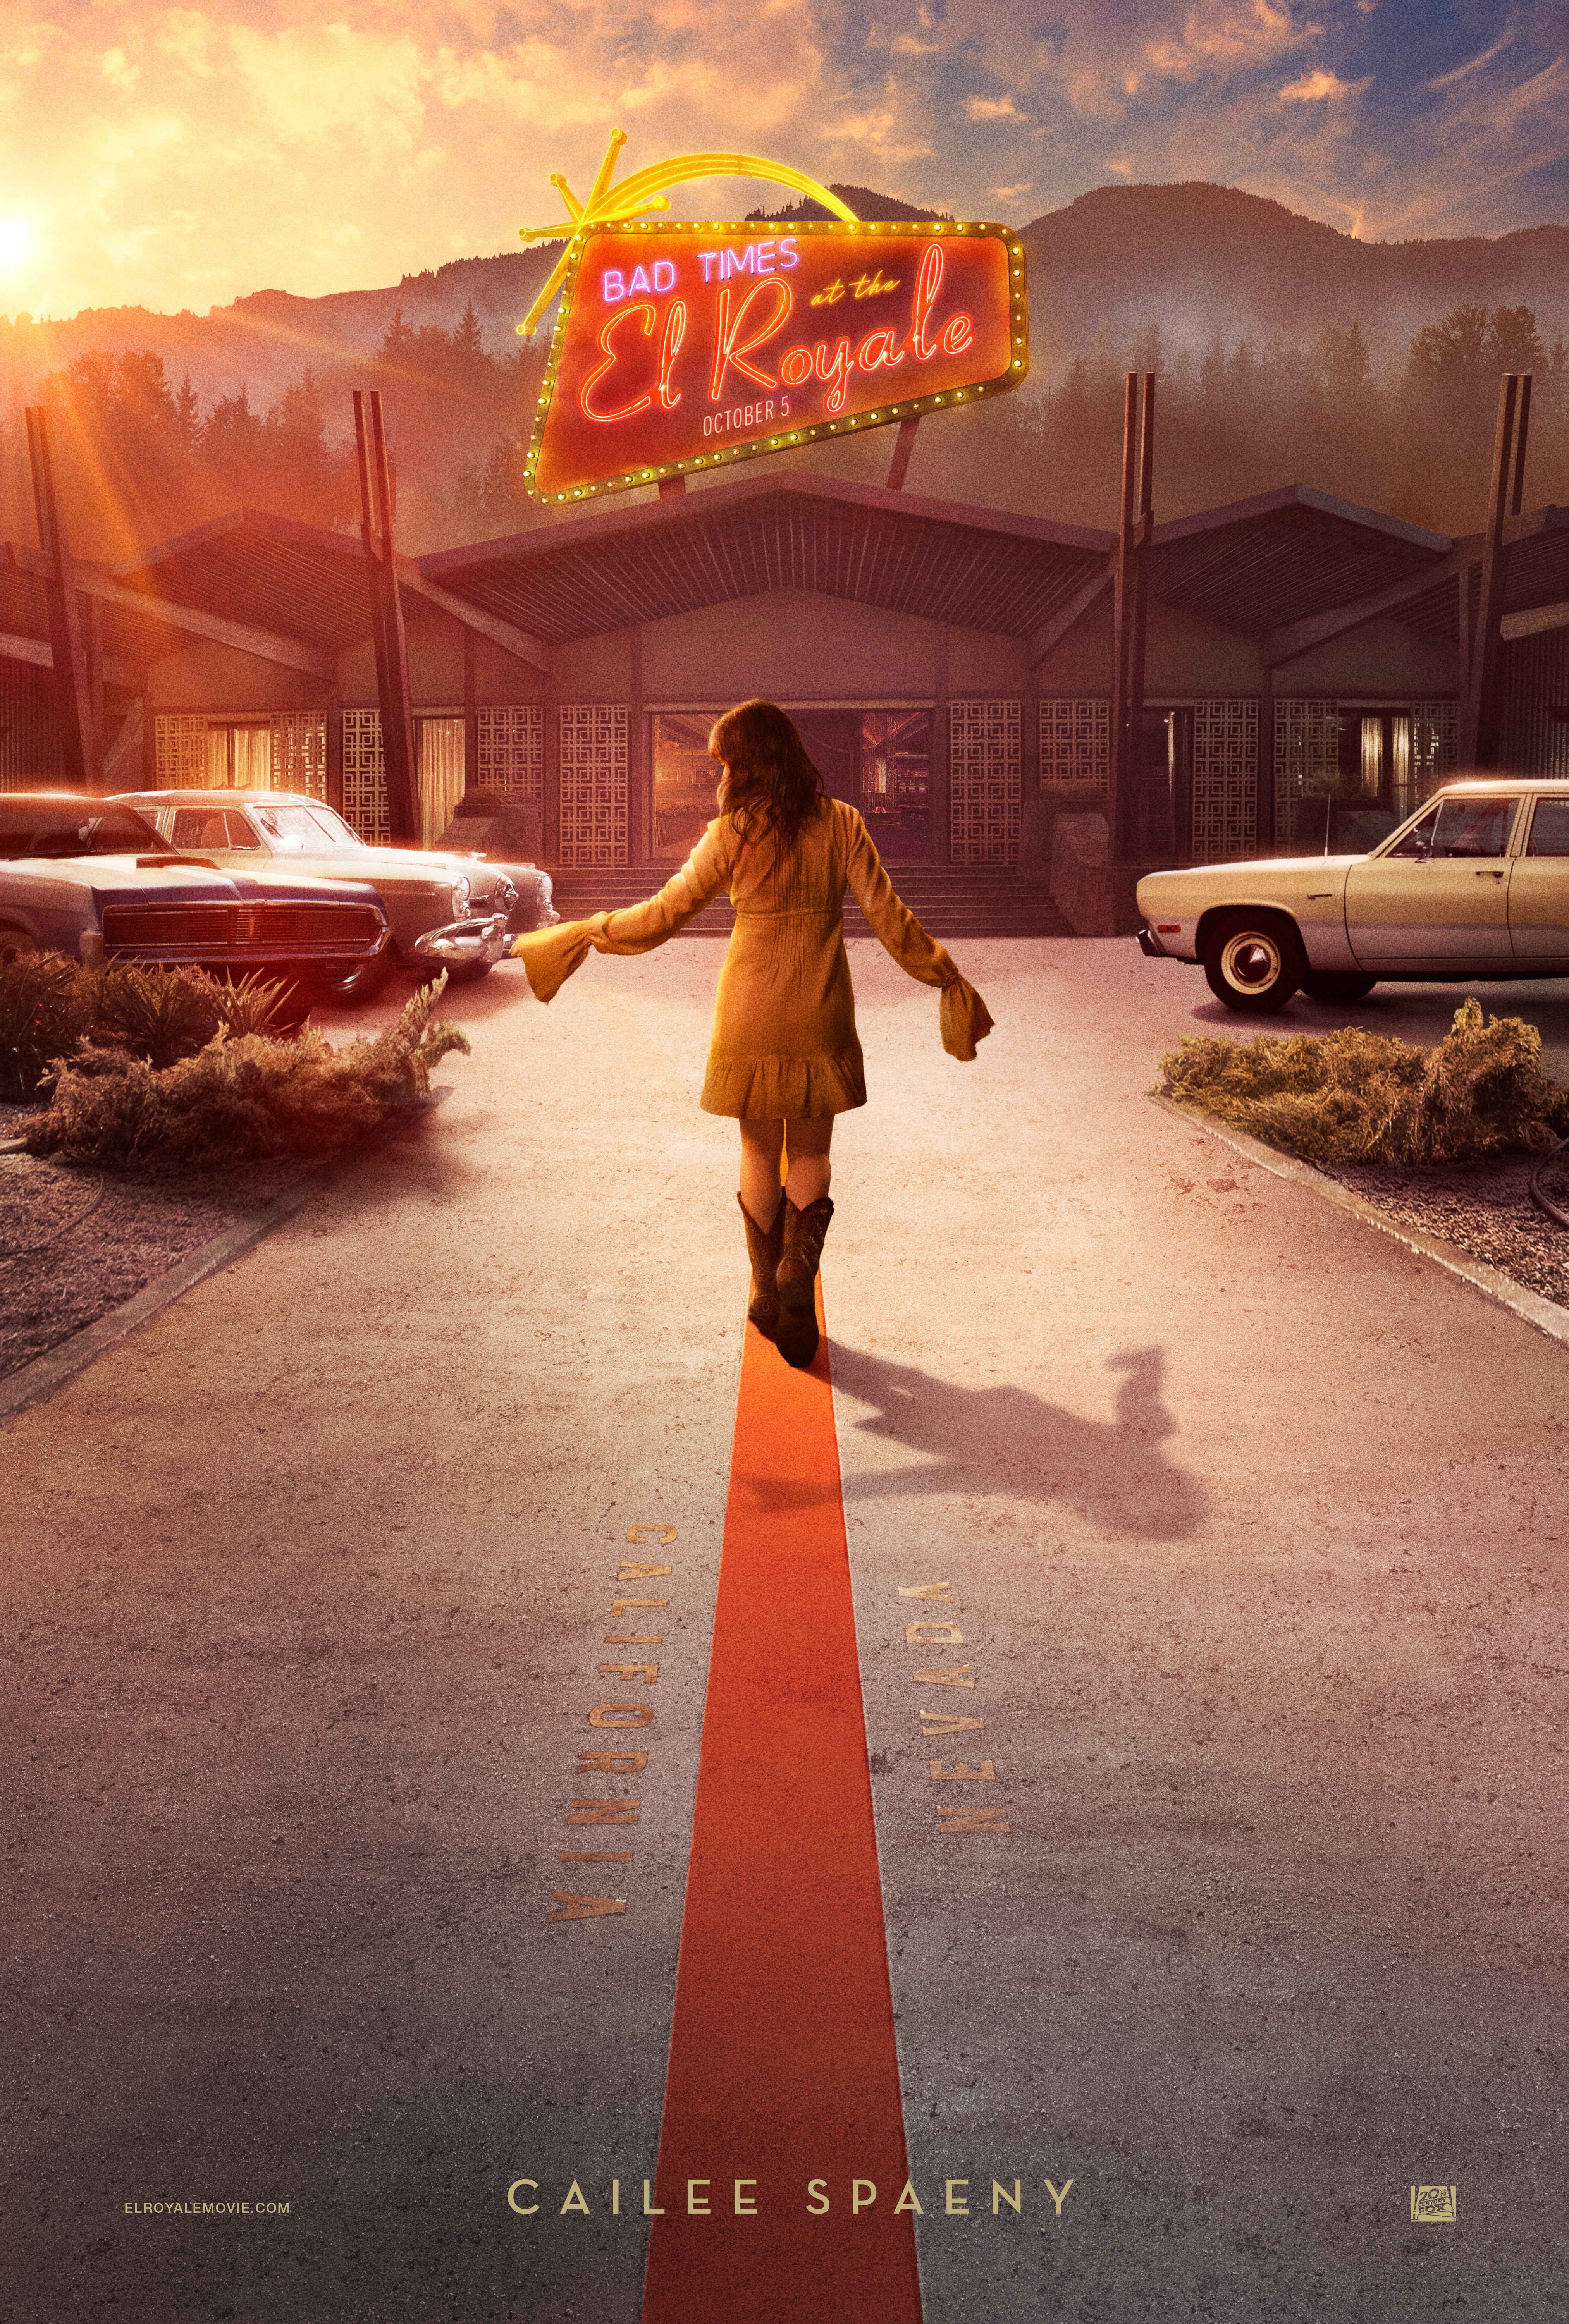 Cailee Spaeny in Bad Times at the El Royale (2018)